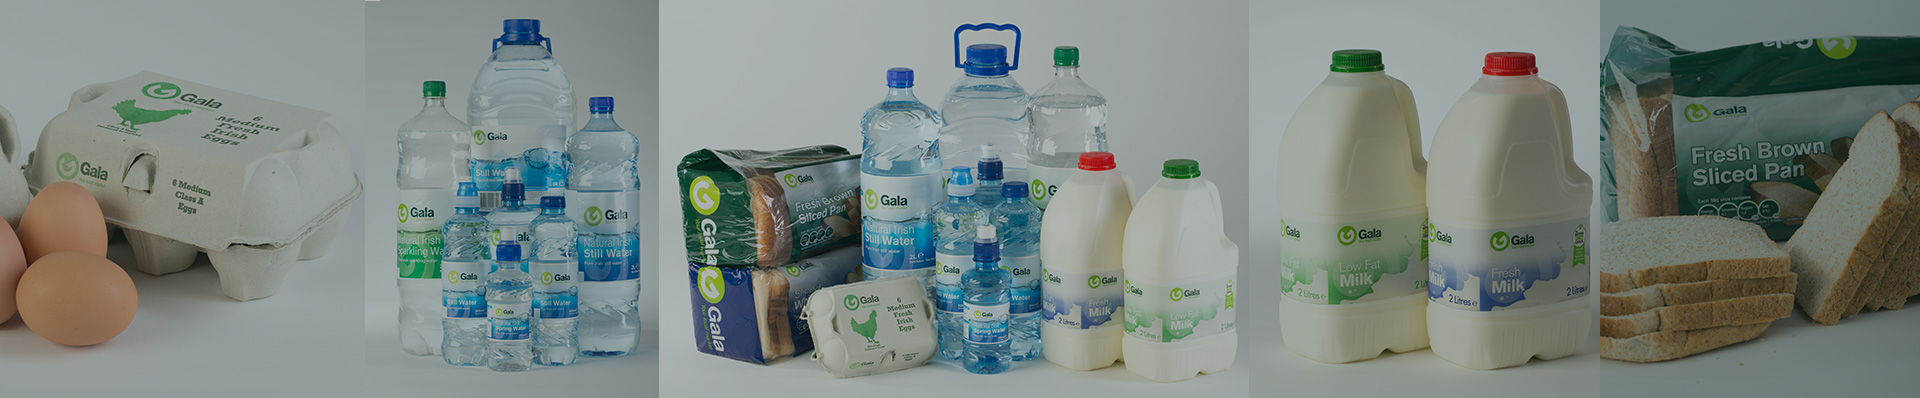 Gala Own Brand Products